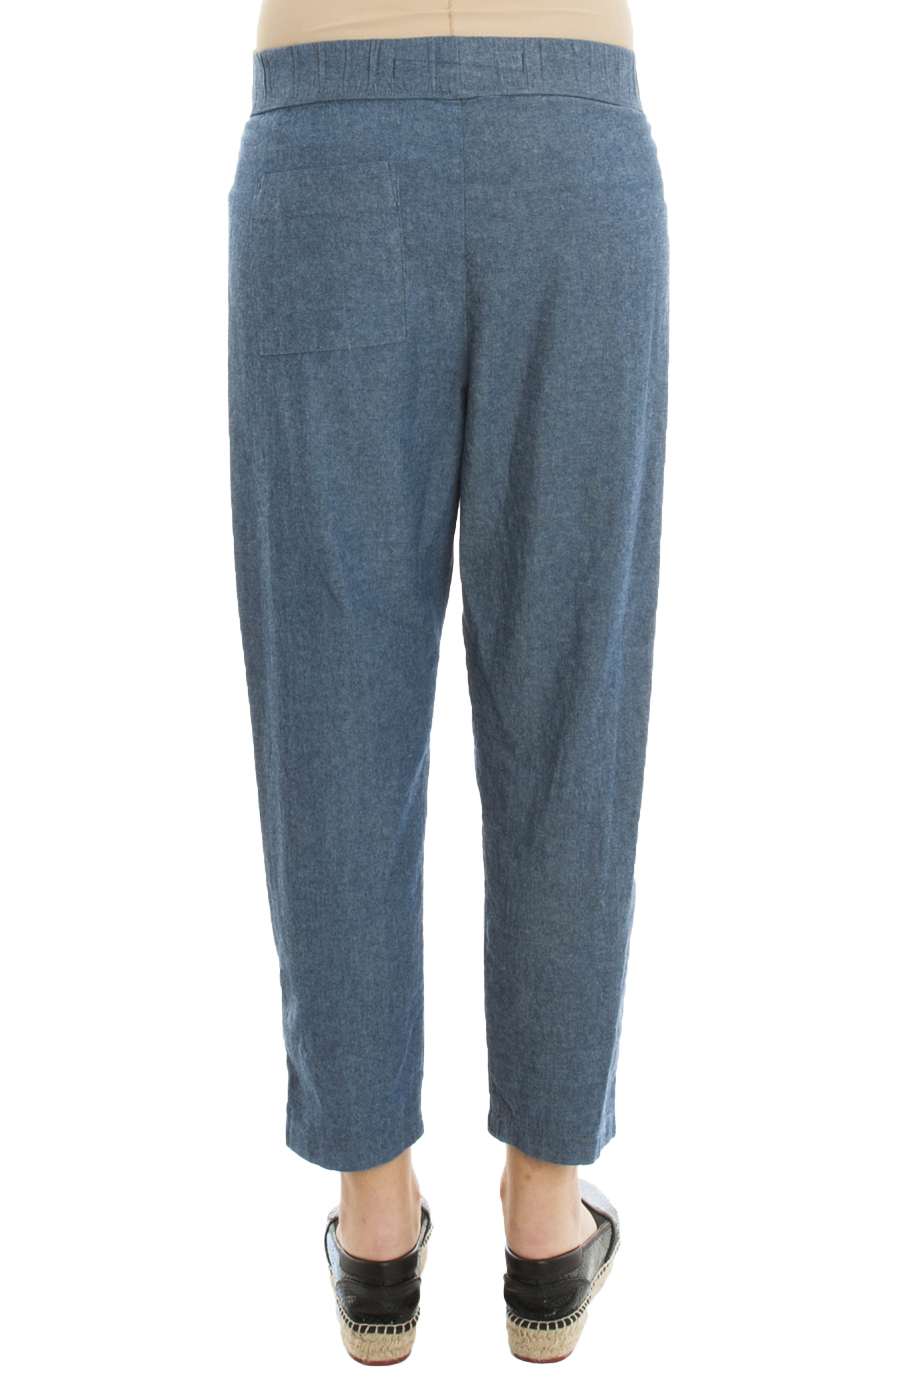 lyst raquel allegra easy chambray jeans in blue